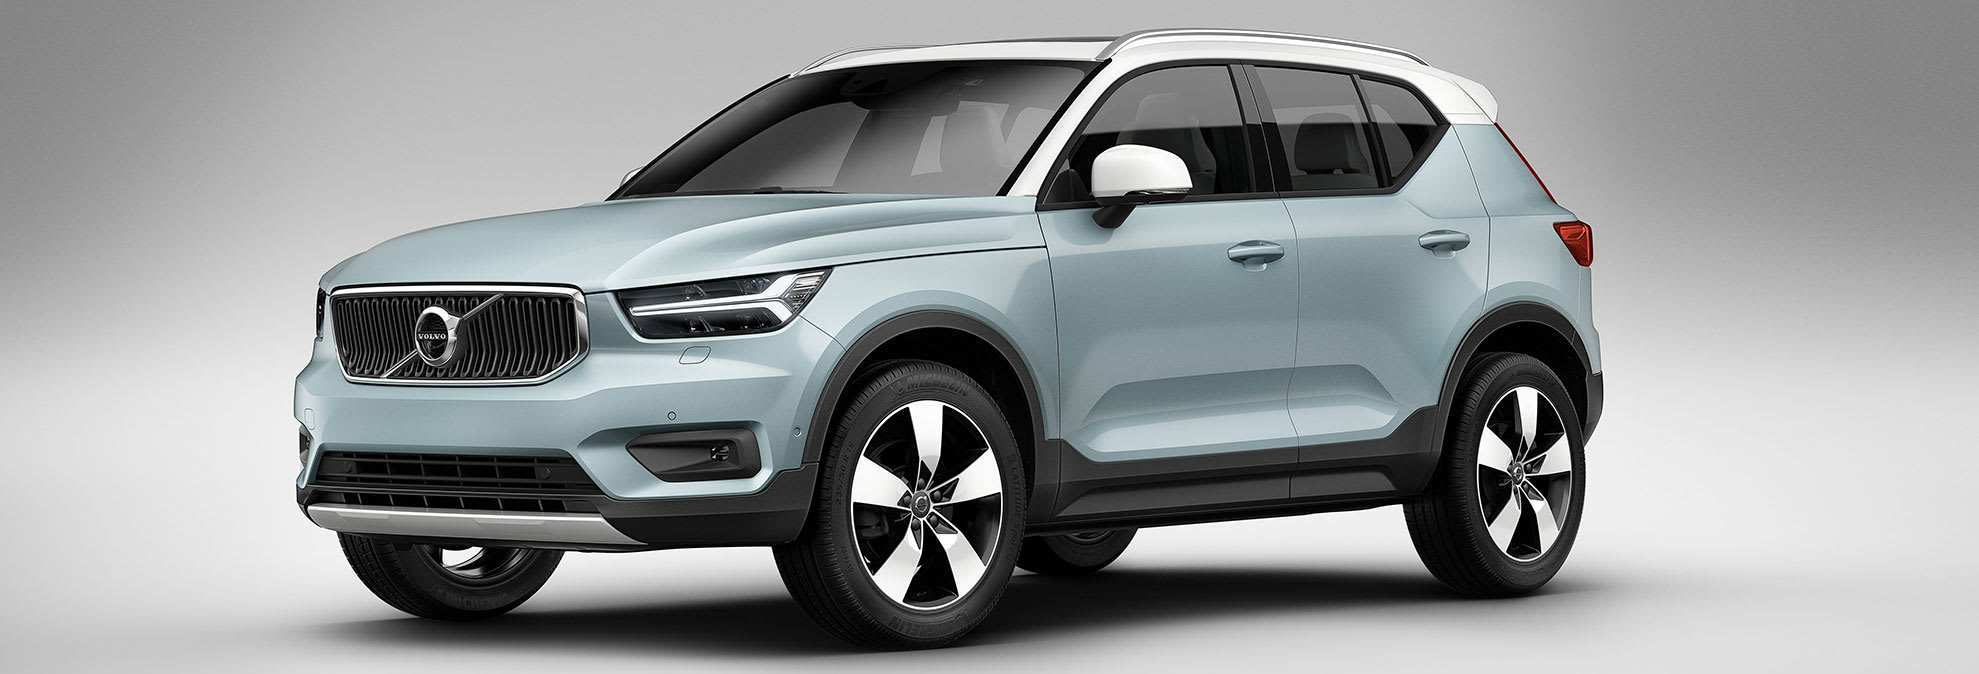 58 Concept of 2020 Volvo Xc40 Length Research New with 2020 Volvo Xc40 Length